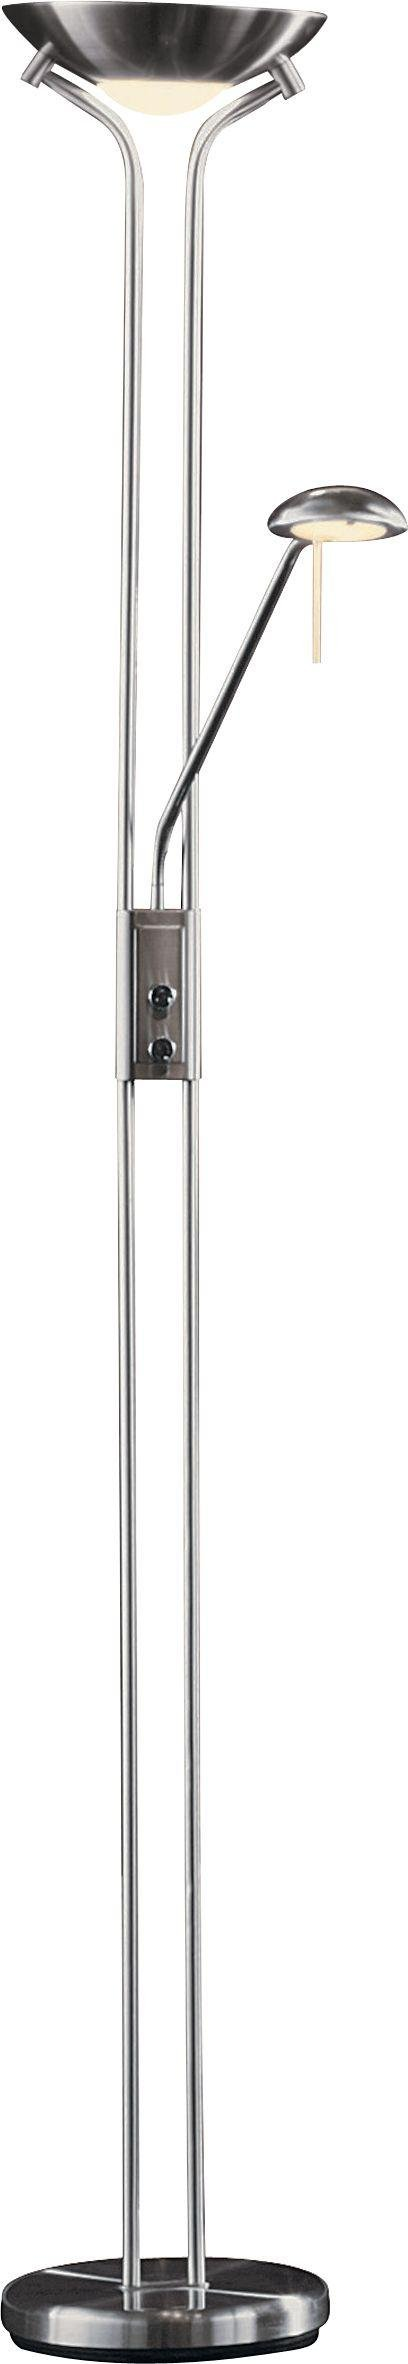 An Image of Argos Home Father & Child Uplighter Floor Lamp - Chrome